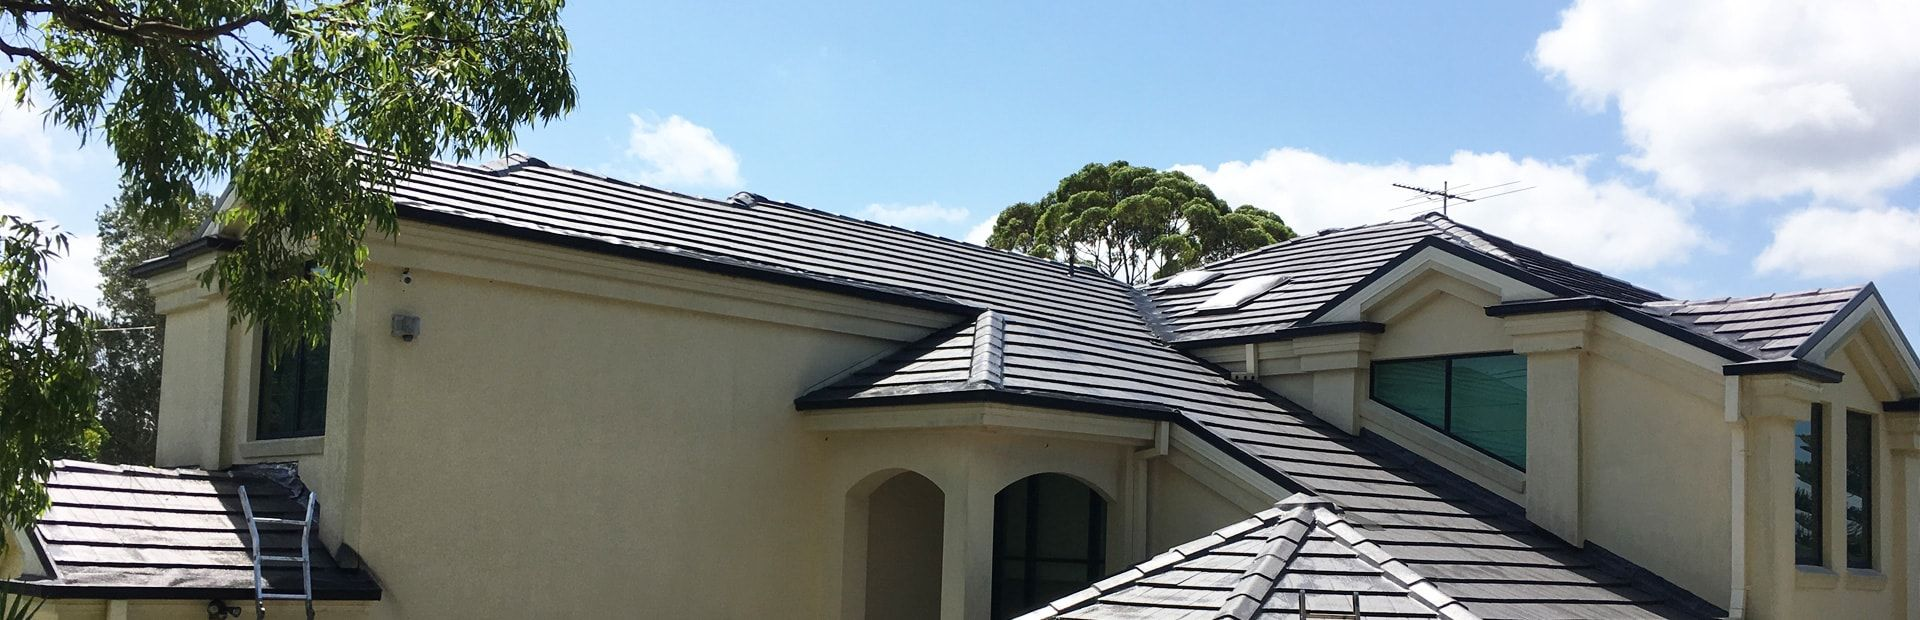 Roof Painting Services in Sydney, Gladesville, Ryde